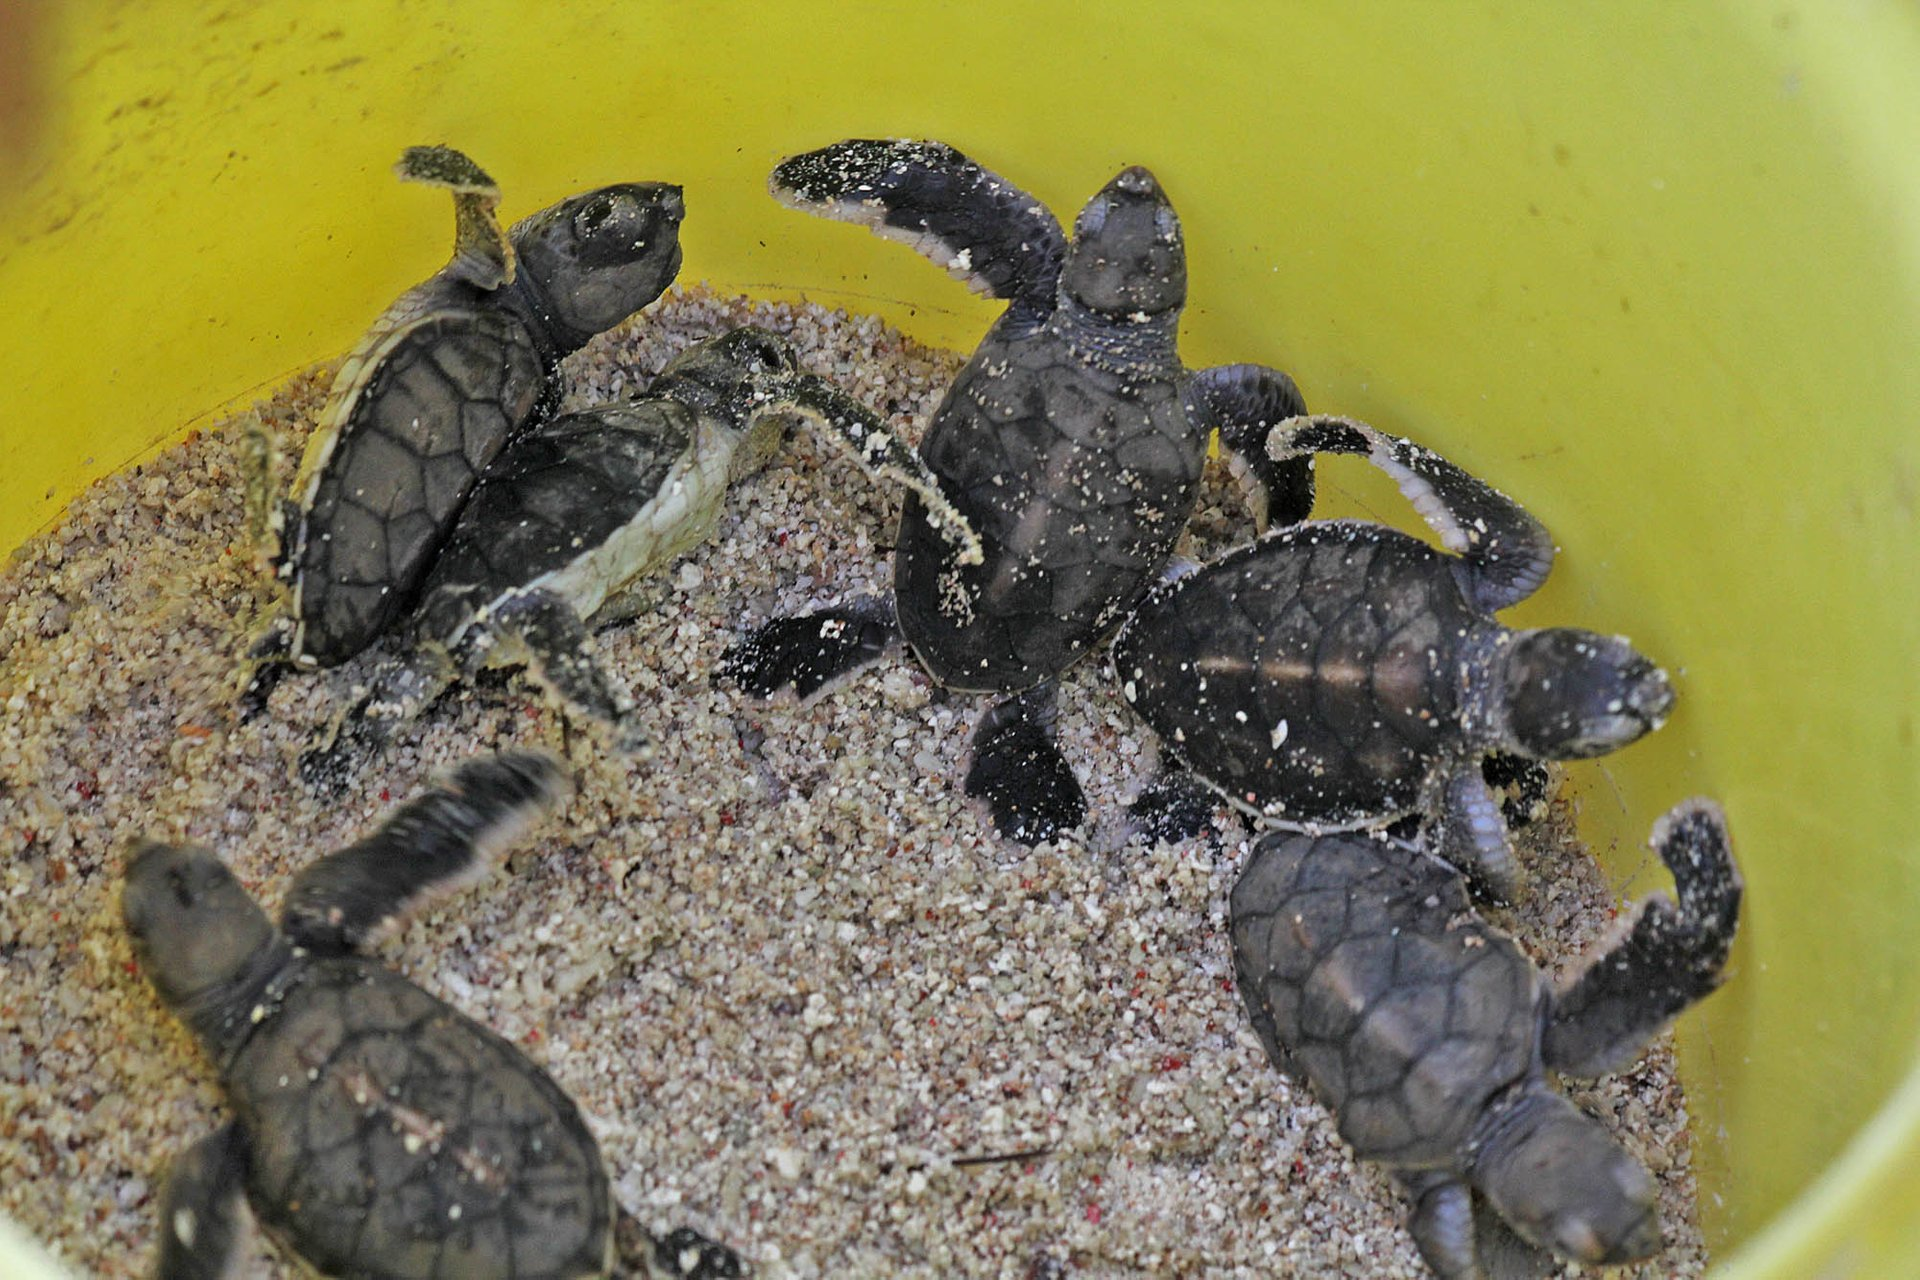 Hatching Turtles in Great Barrier Reef 2019 - Best Time